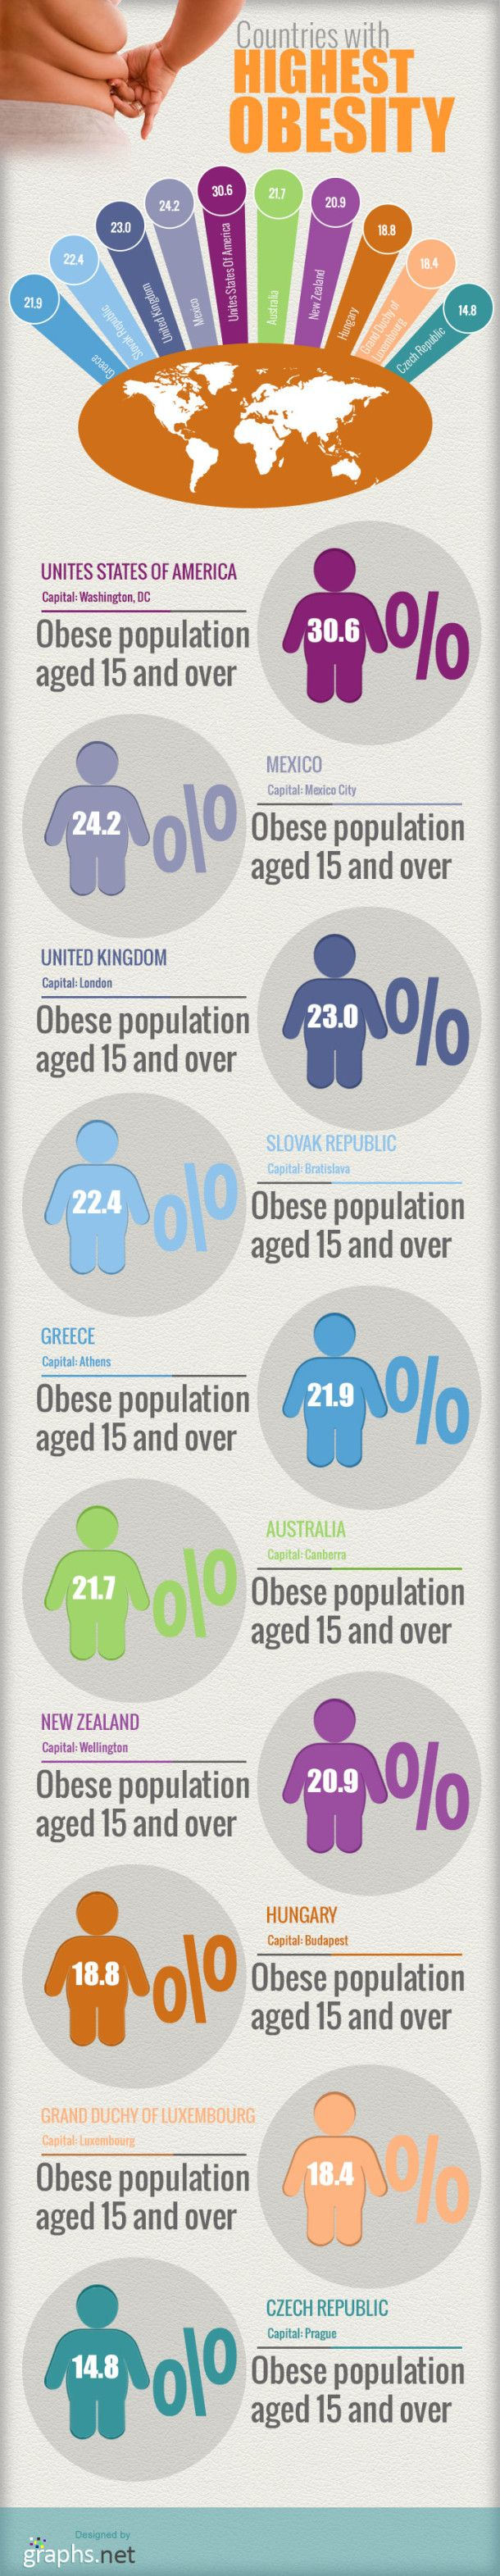 Countries With Highest Obesity [INFOGRAPHIC] #countries #obesity